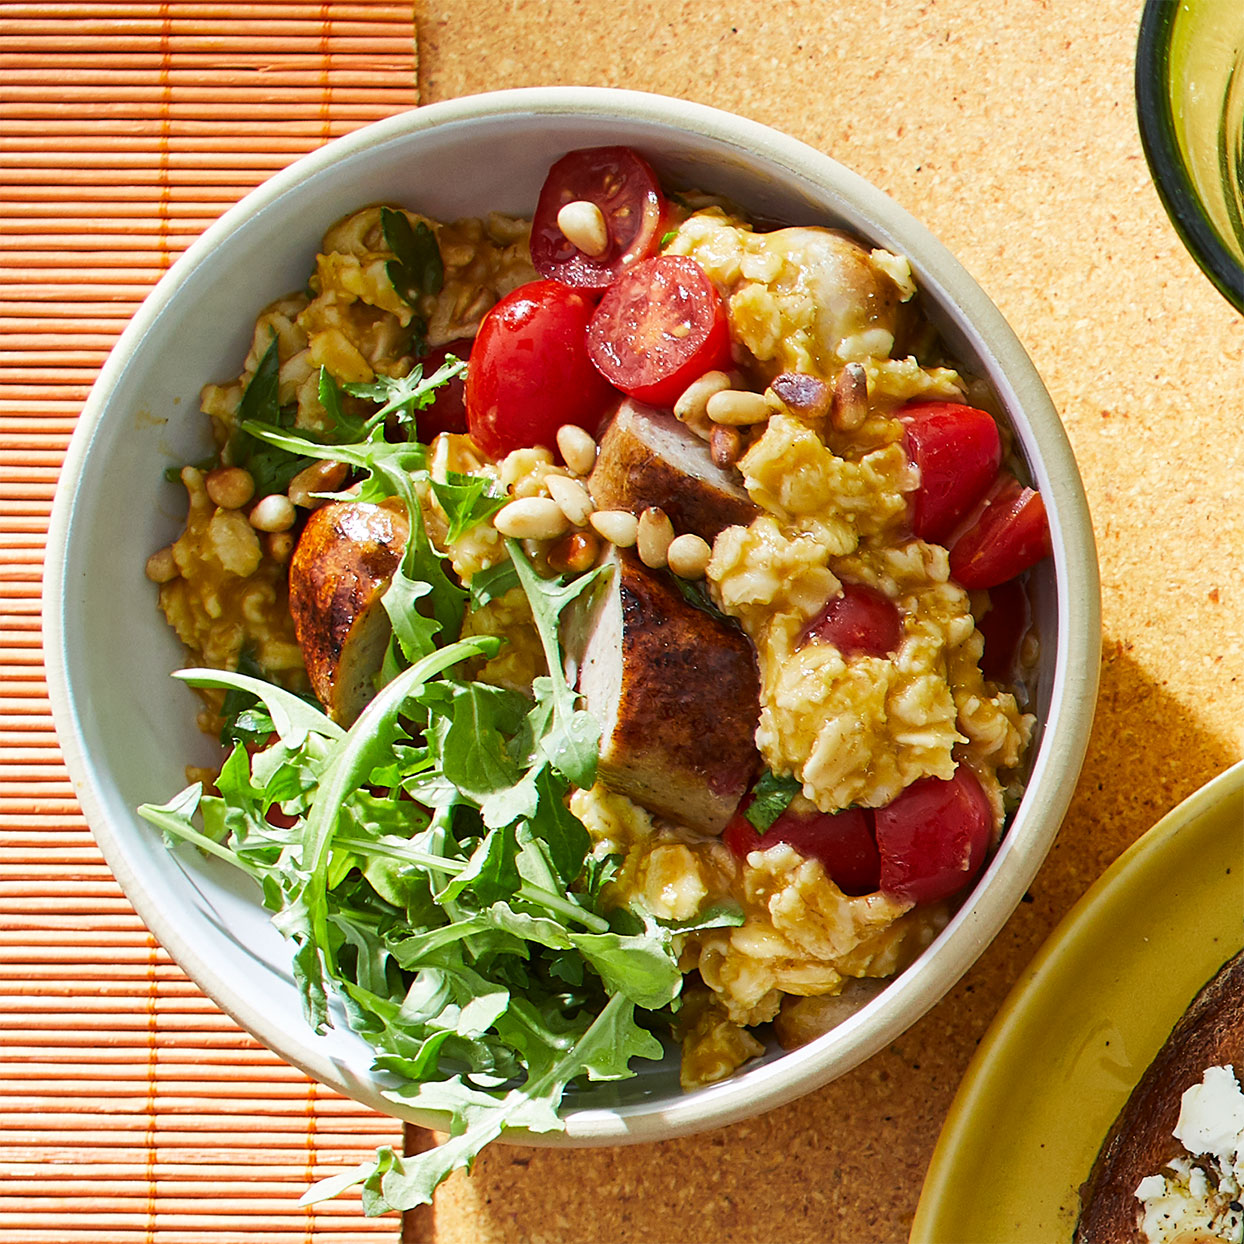 Oats get a new life in this savory dish, serving as the backbone for a satisfying combo of sausage, greens, tomatoes, and herbs.